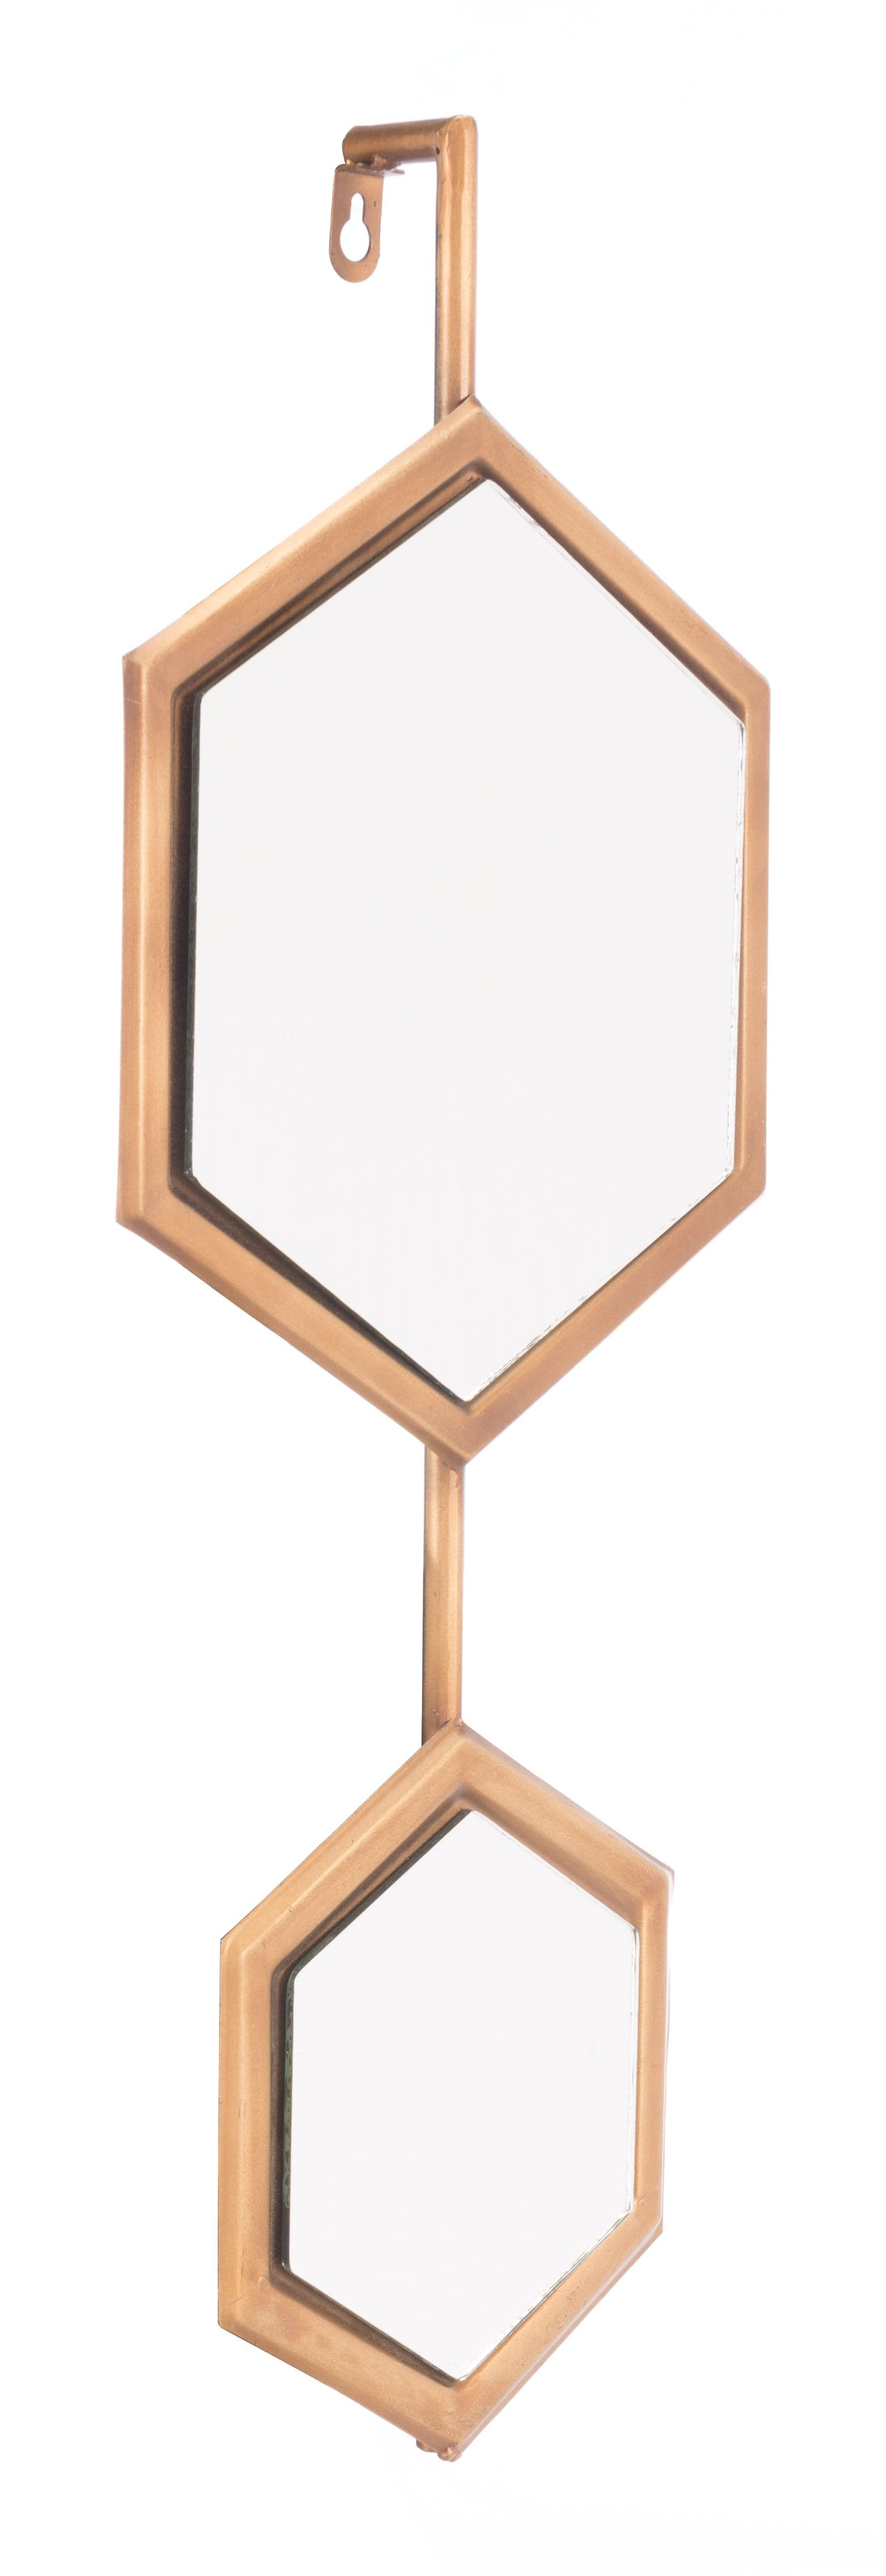 Bee Mirror 1 In Gold (Set Of 2) Wall Decor Alan Decor